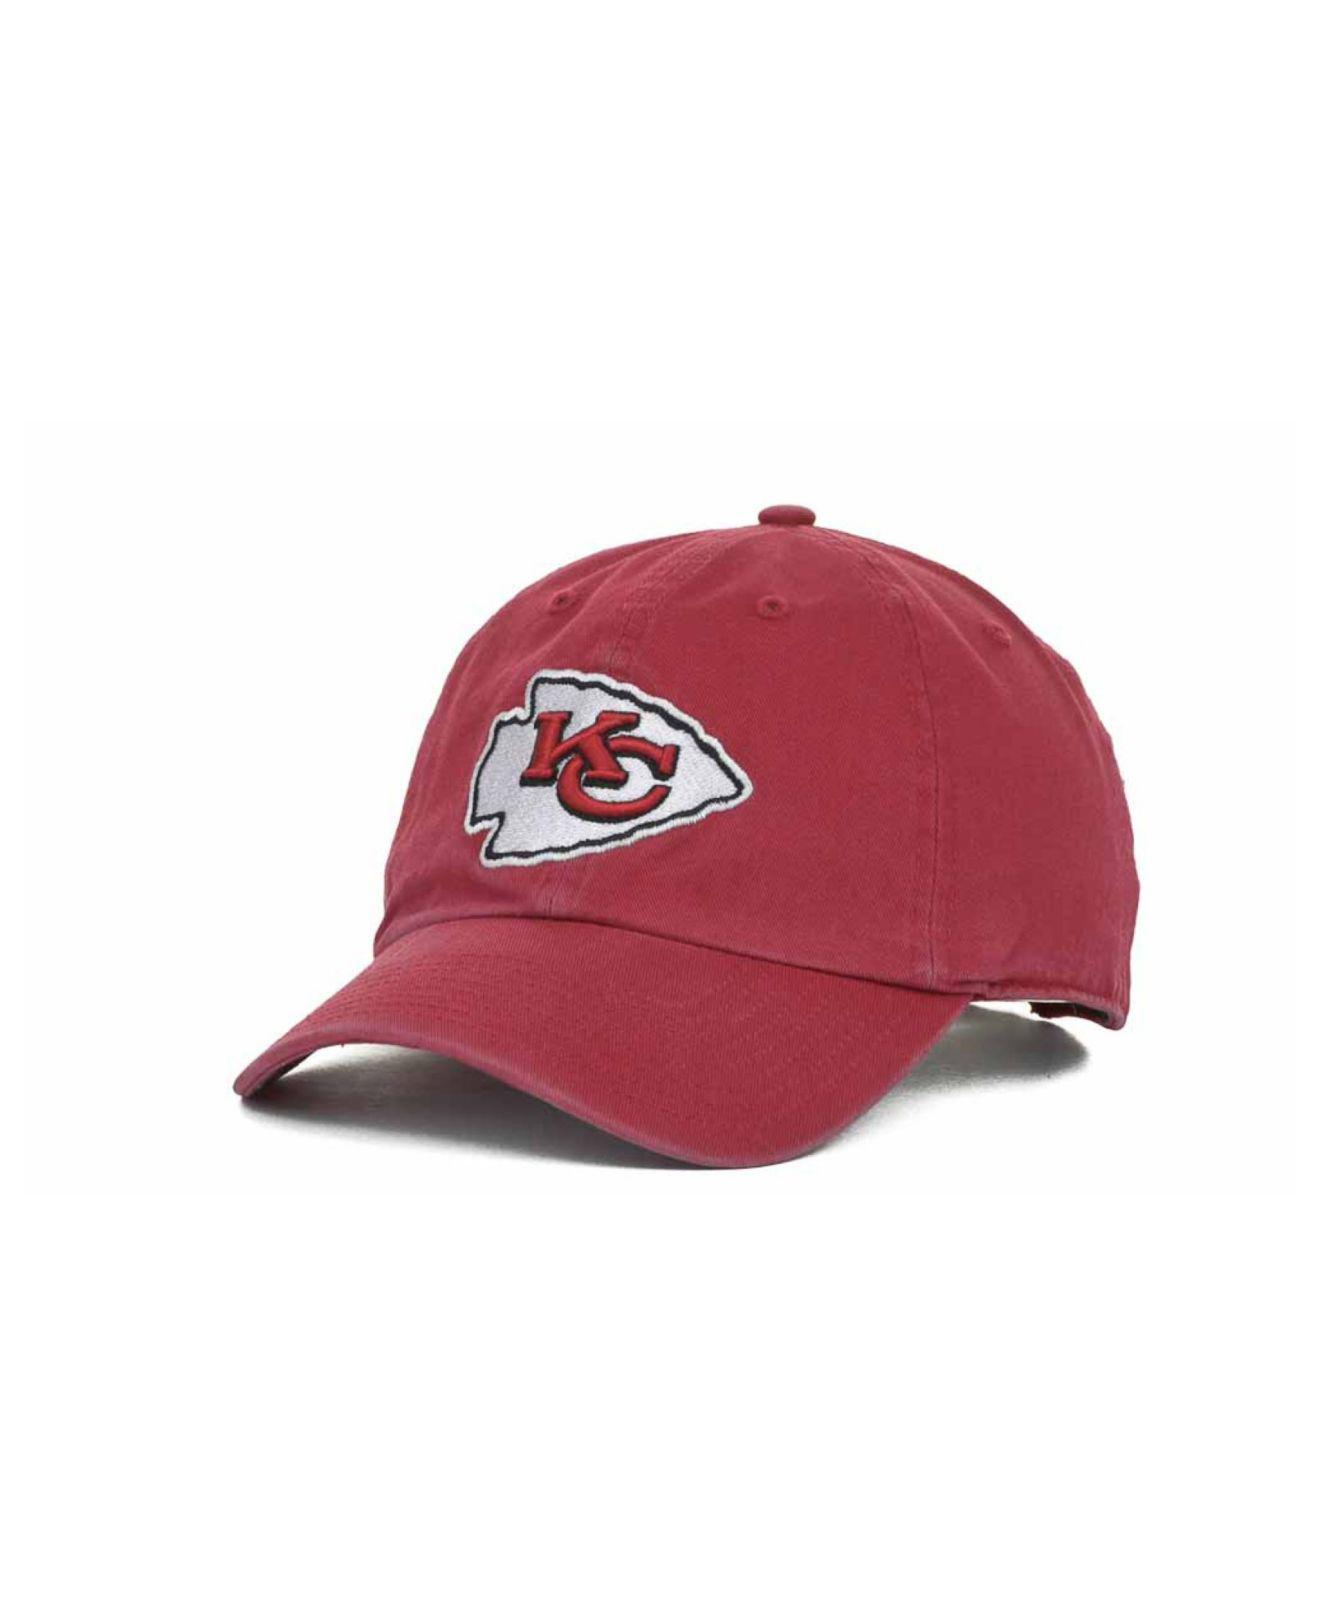 c6c0be74a97 Lyst - 47 Brand Kansas City Chiefs Clean Up Cap in Red for Men